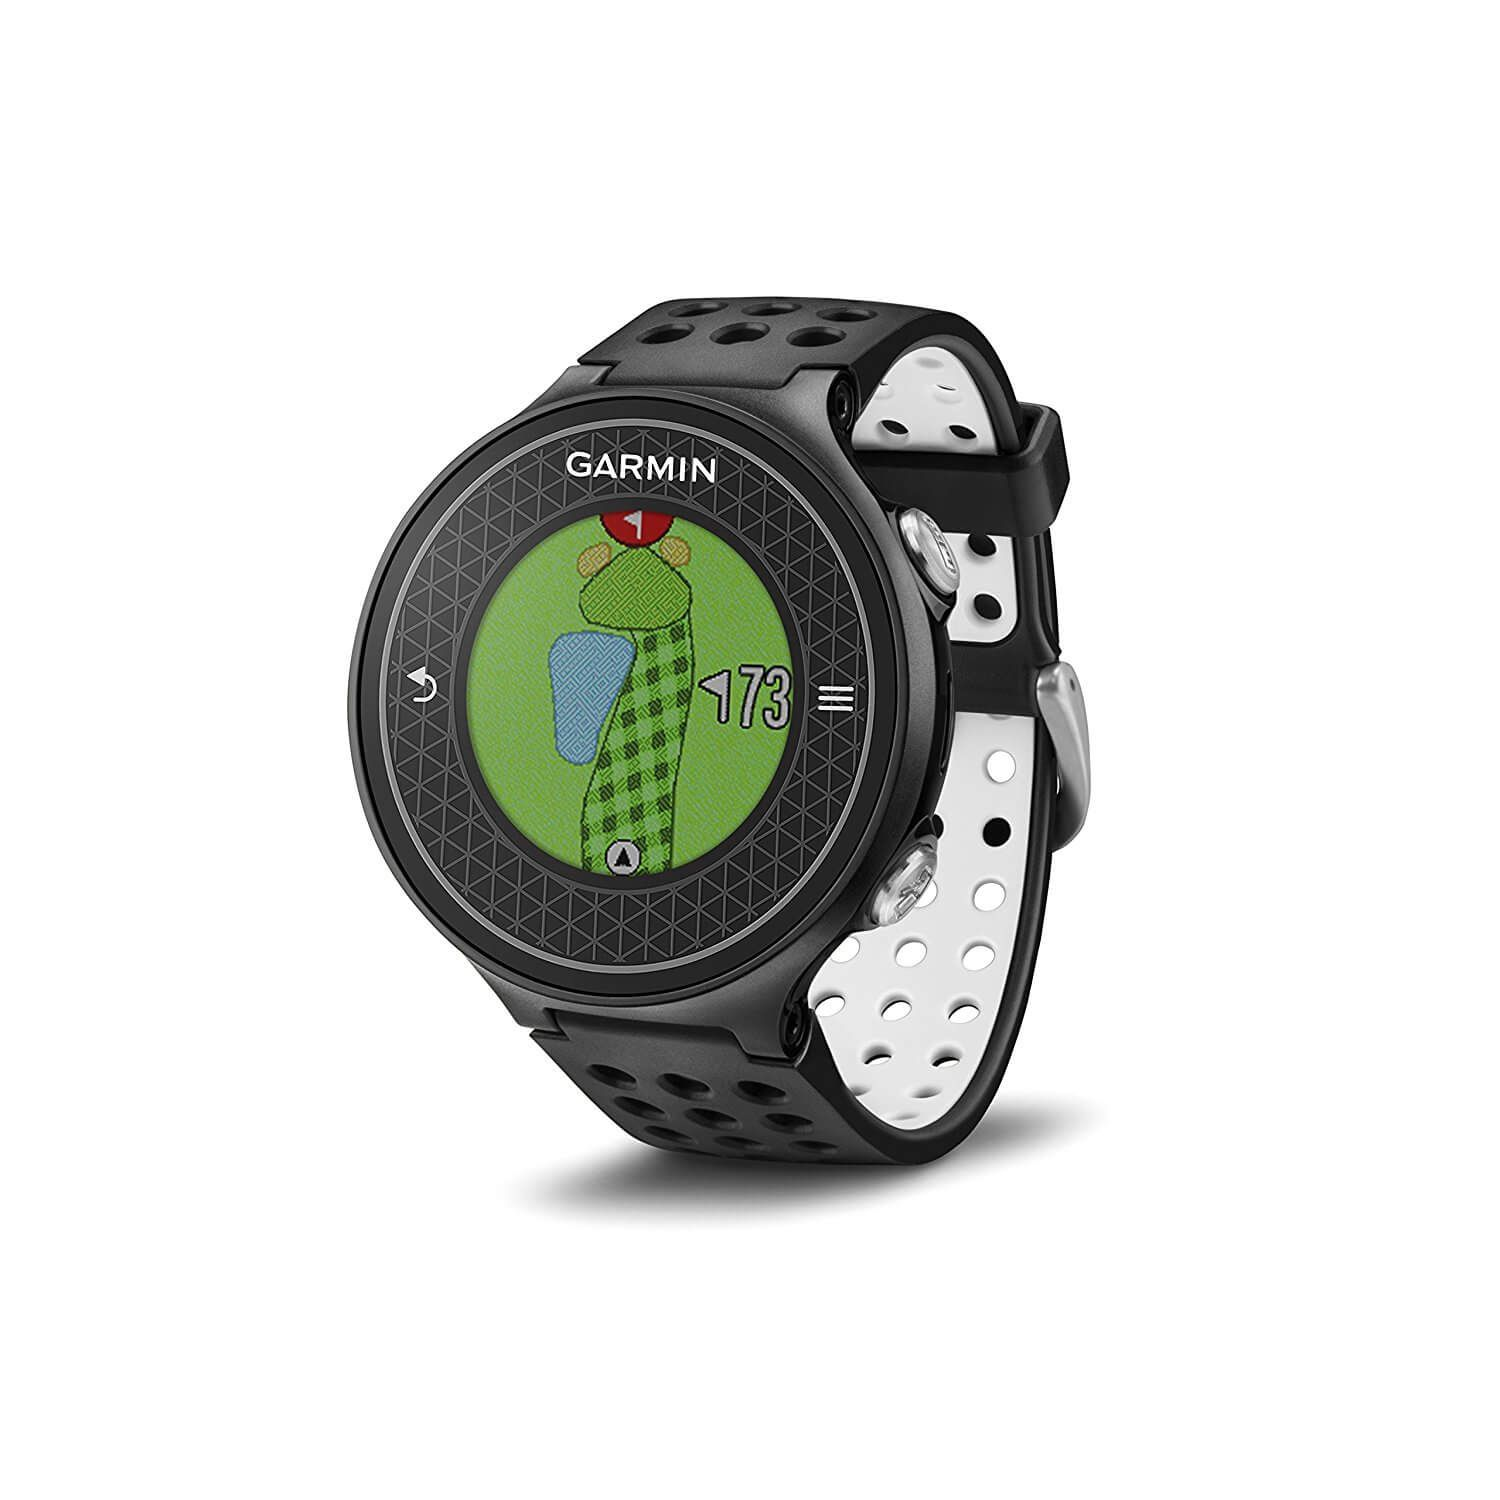 The Best Golf GPS Watches for Men Golf gps watch, Golf